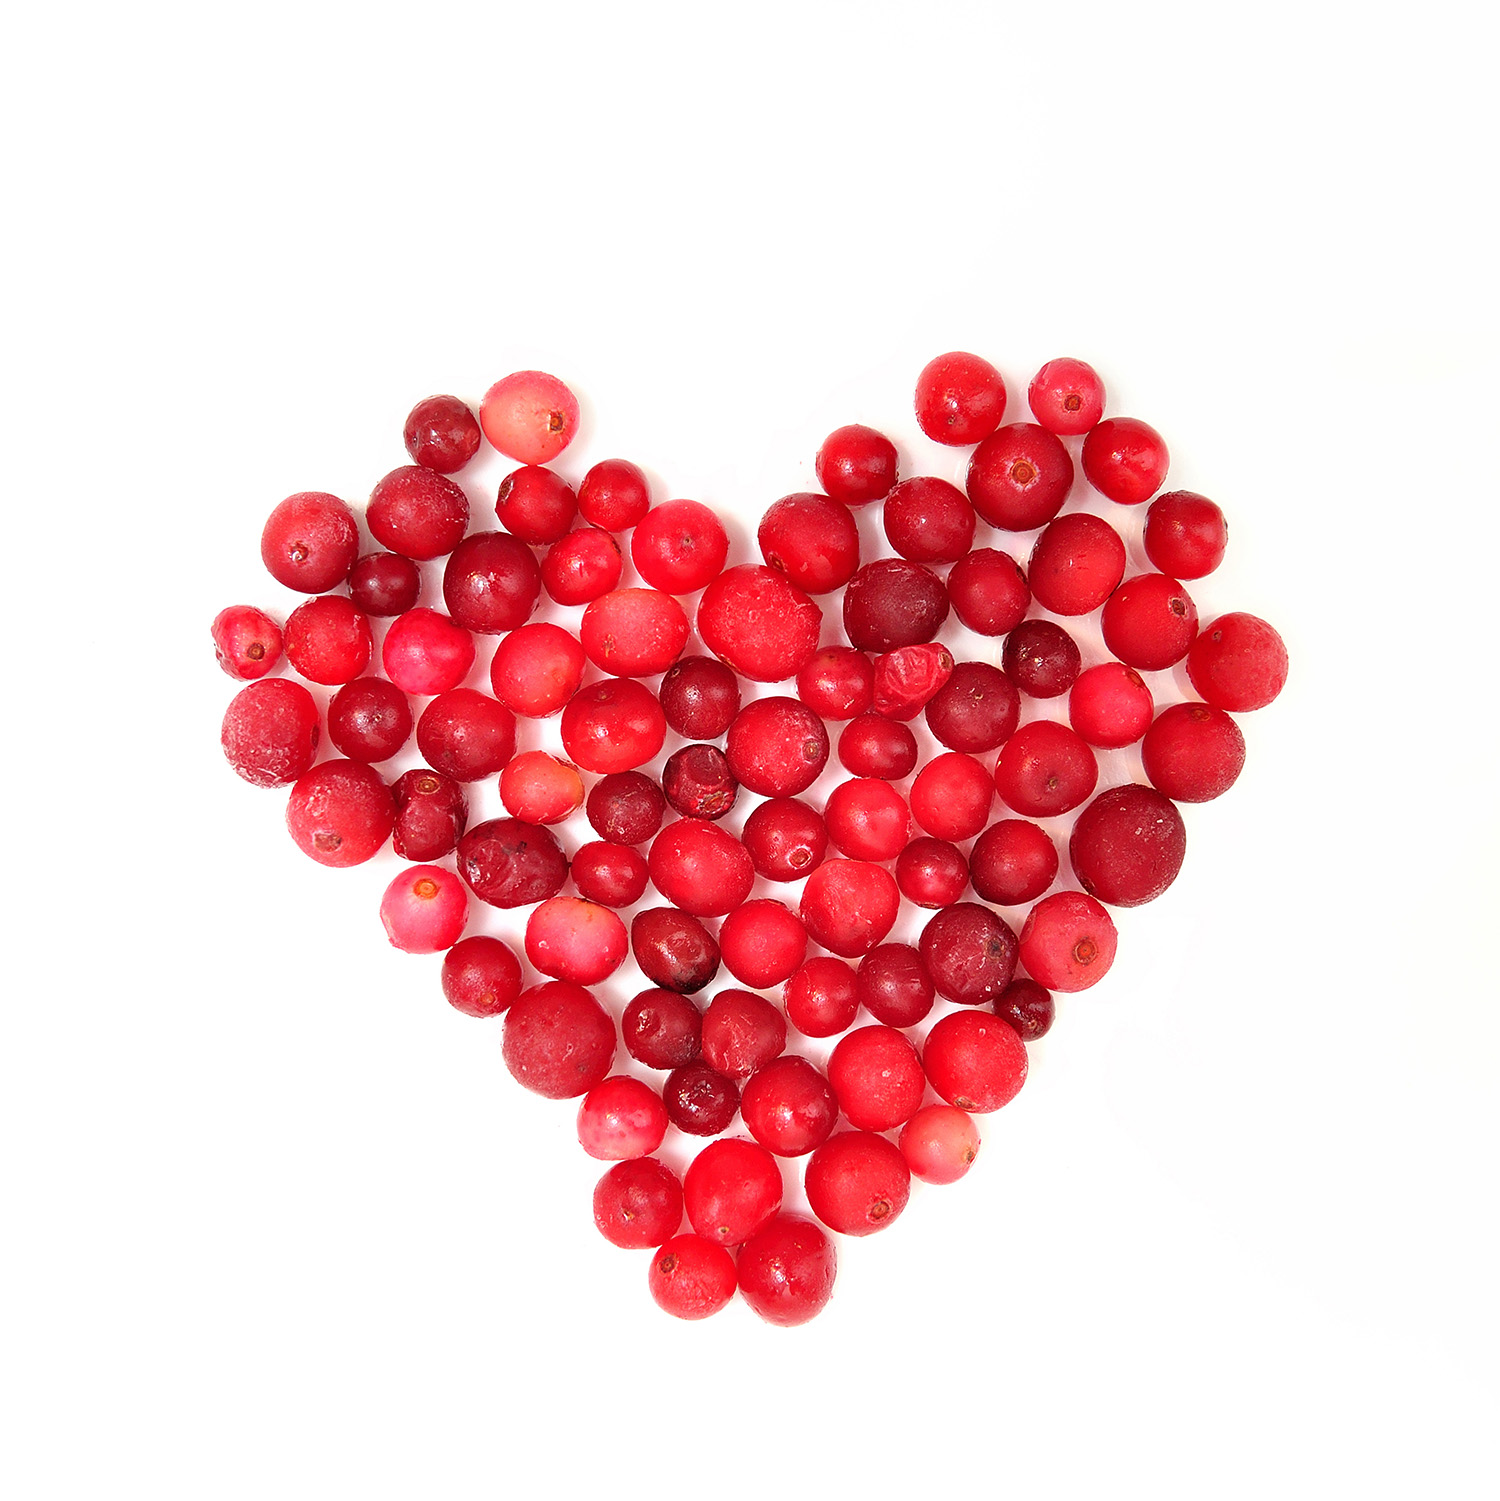 Heart-shaped red fruit composition 49958